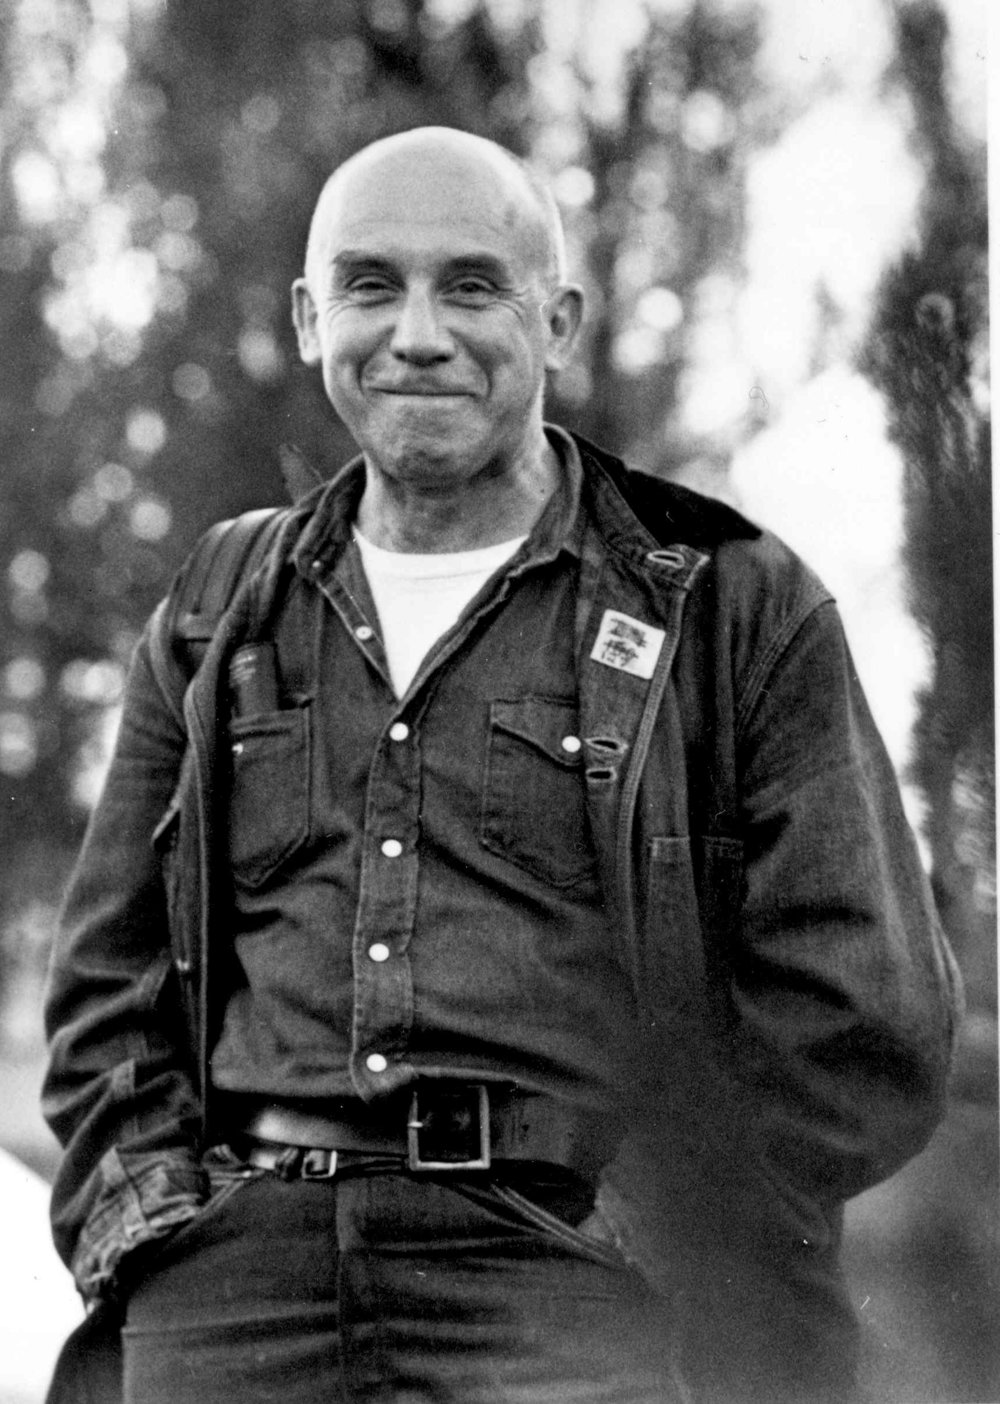 If you're interested in learning more about Thomas Merton check out  this documentary  on him, ask one of our staff for a book recommendation, or read  his Wikipedia page  like a normal person.